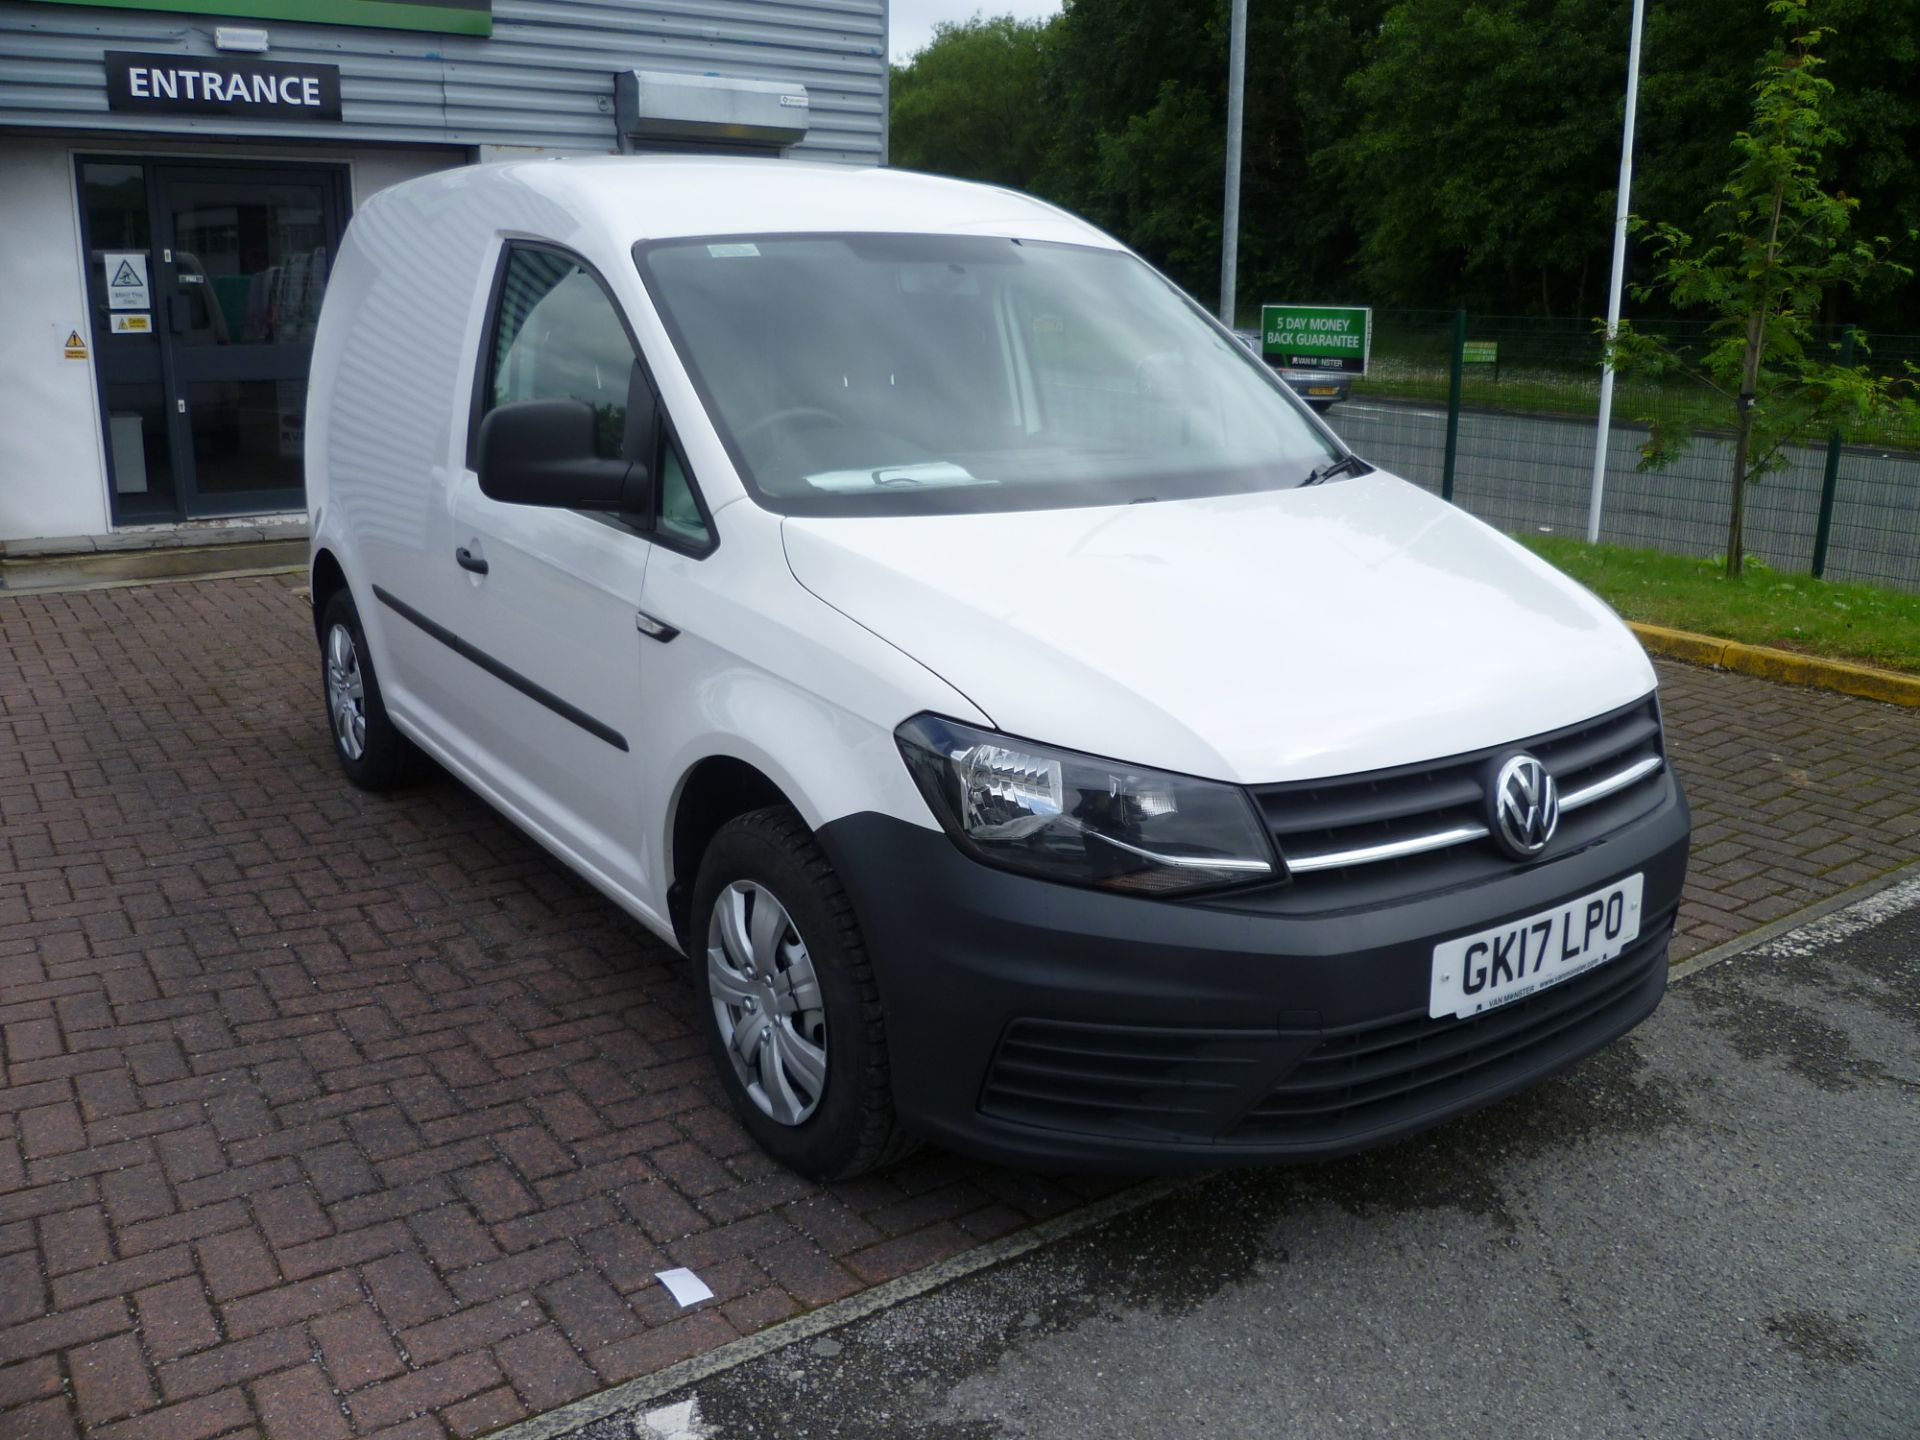 2017 Volkswagen Caddy 2.0 102PS BLUEMOTION TECH 102 STARTLINE EURO 6 (GK17LPO)